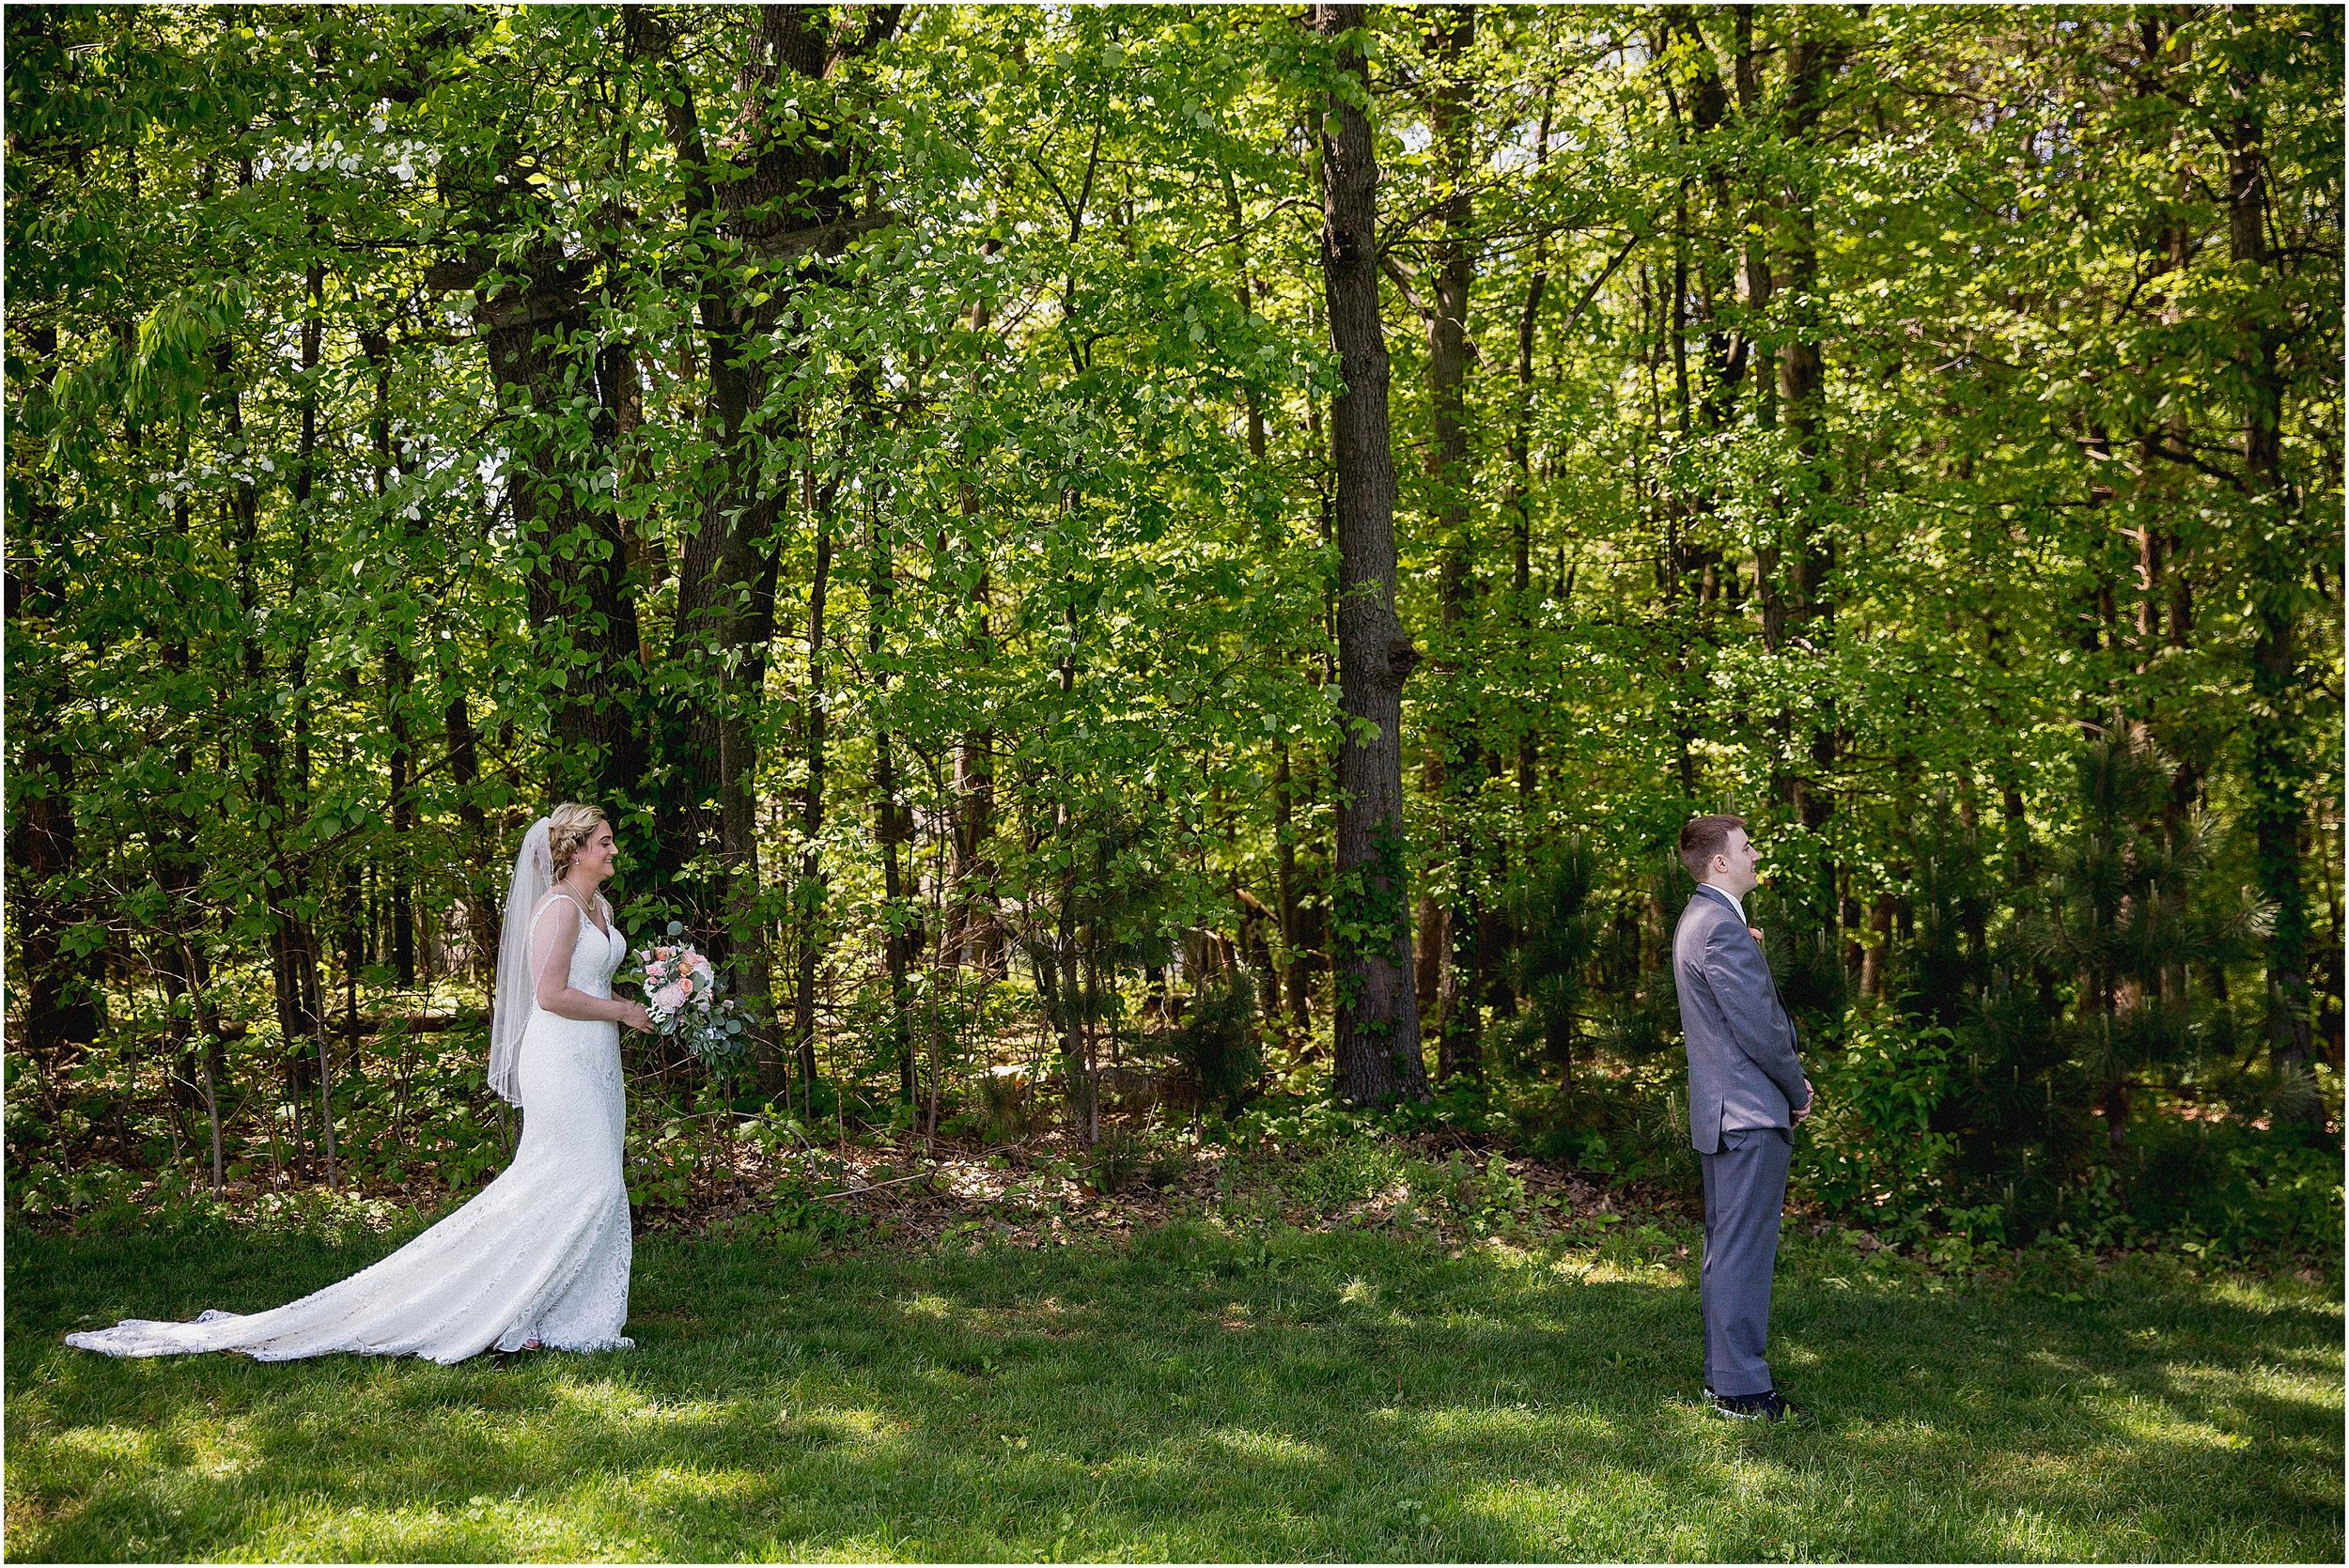 Whispering_Oaks_Wedding_Photographer_0431.jpg